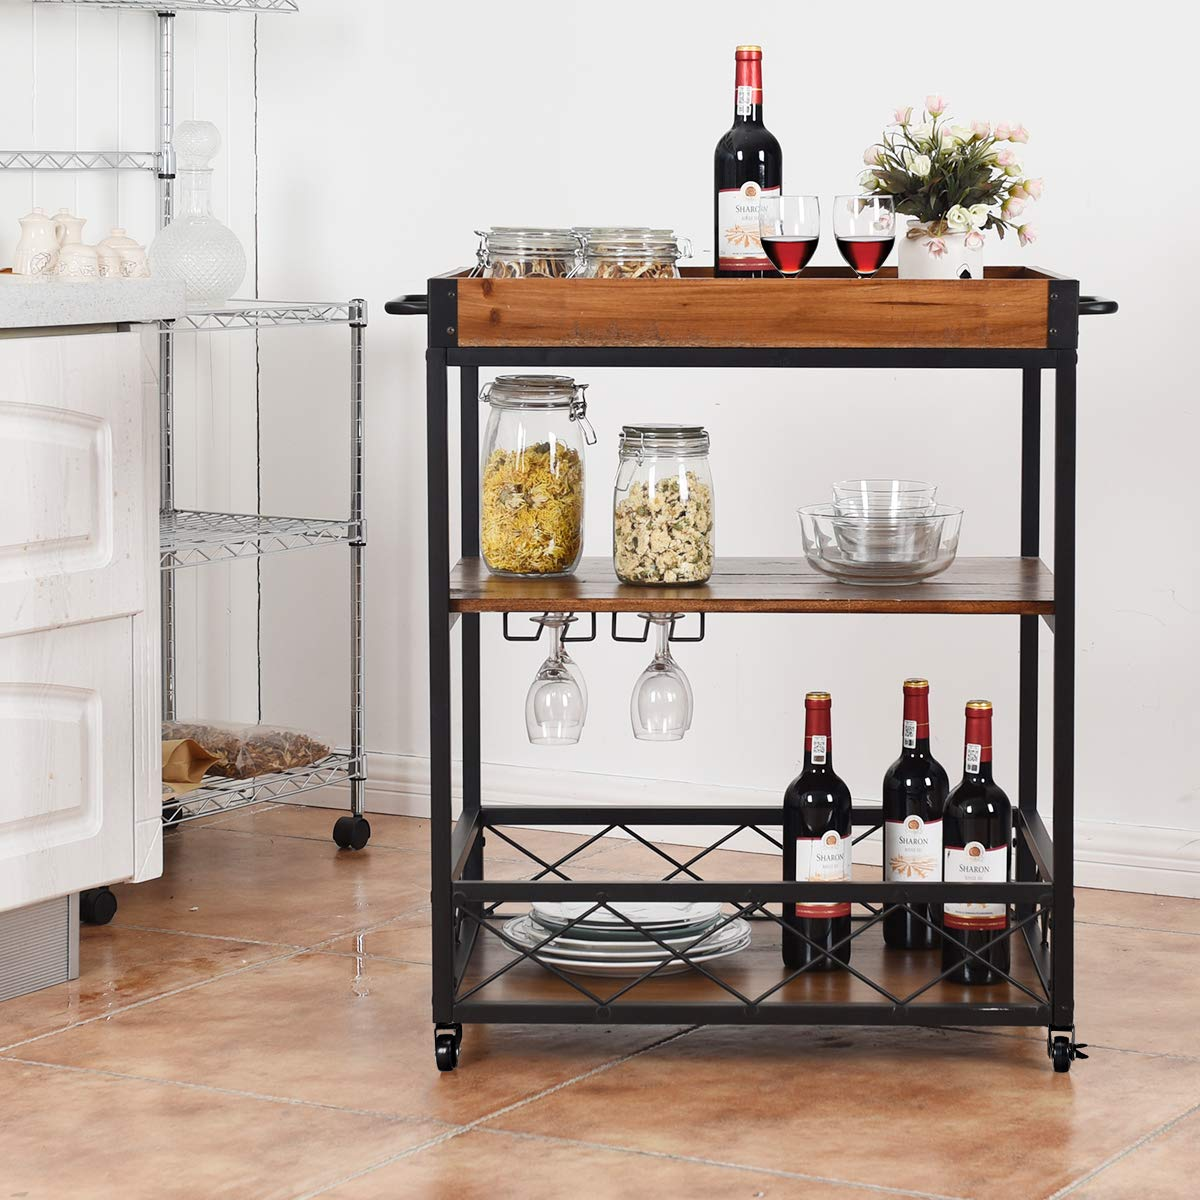 Giantex Kitchen Trolley Cart Island Rolling Serving Carts Utility Cart 3 Tier Storage Shelf with Glass Holde, Handle Racks, Lockable Caster Wheels Kitchen Carts Islands w/Removable Wood Box Container by Giantex (Image #3)